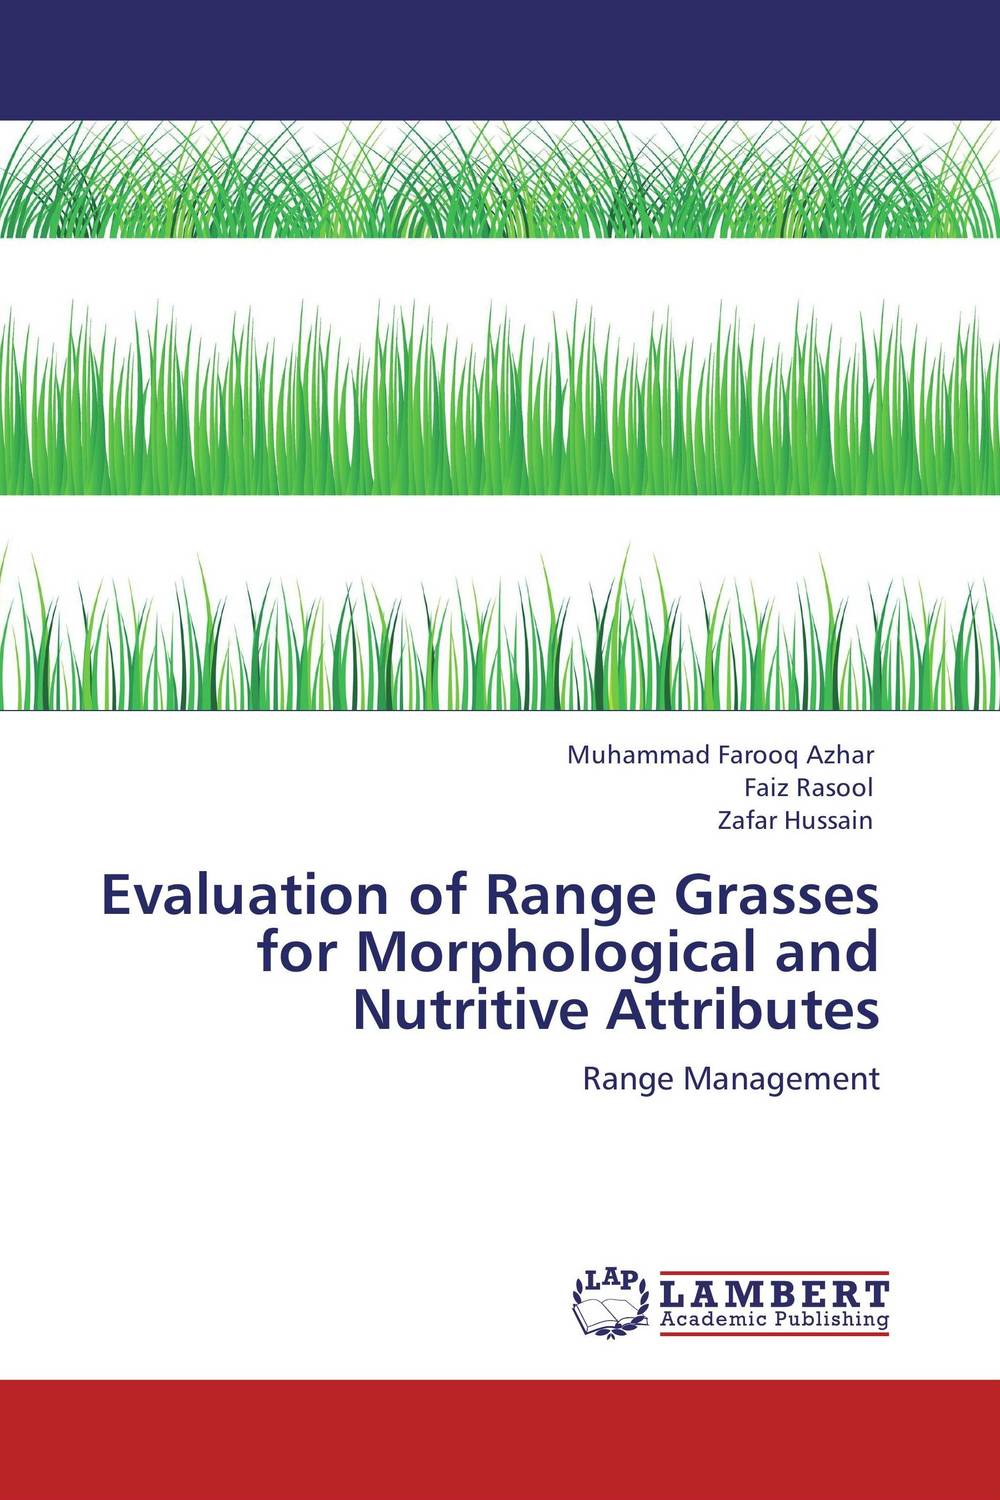 Evaluation of Range Grasses for Morphological and Nutritive Attributes the role of evaluation as a mechanism for advancing principal practice